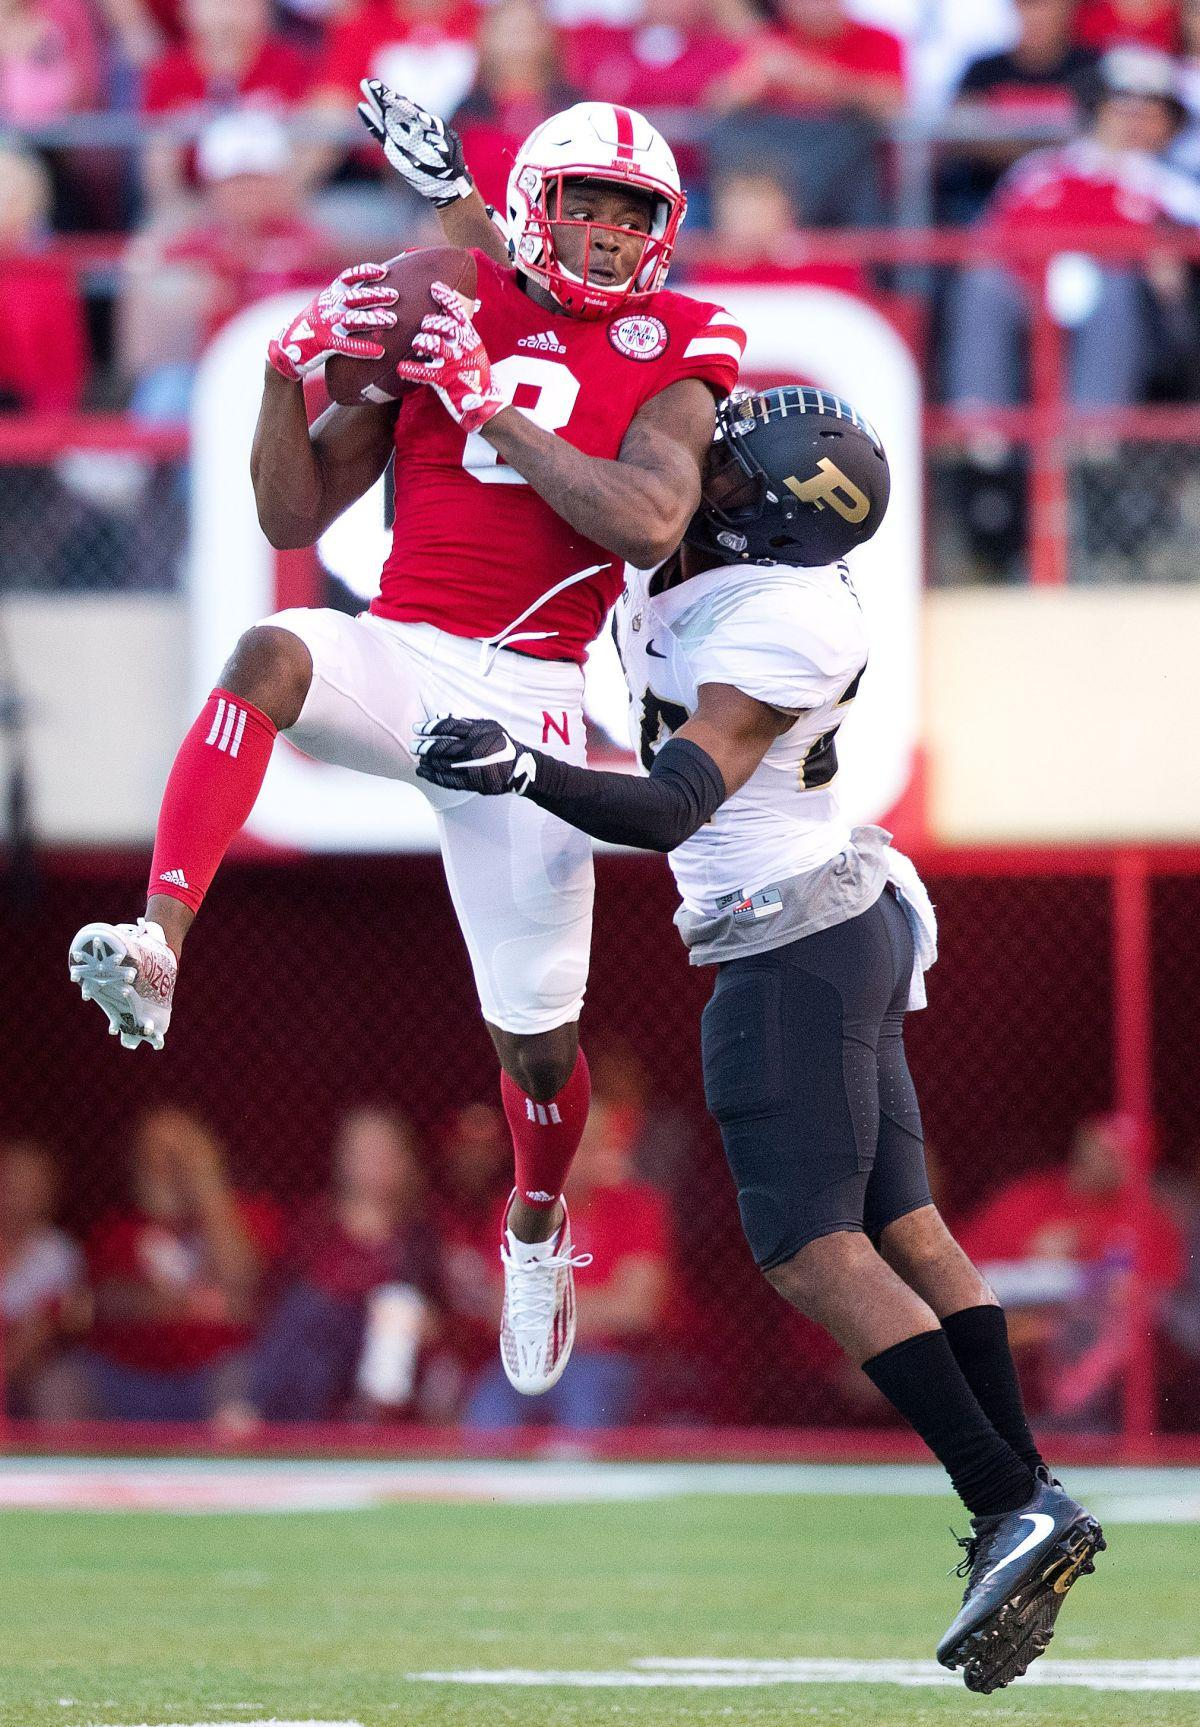 Stanley Morgan Husker Receivers Rise To The Occasion Big Red Today Omaha Com